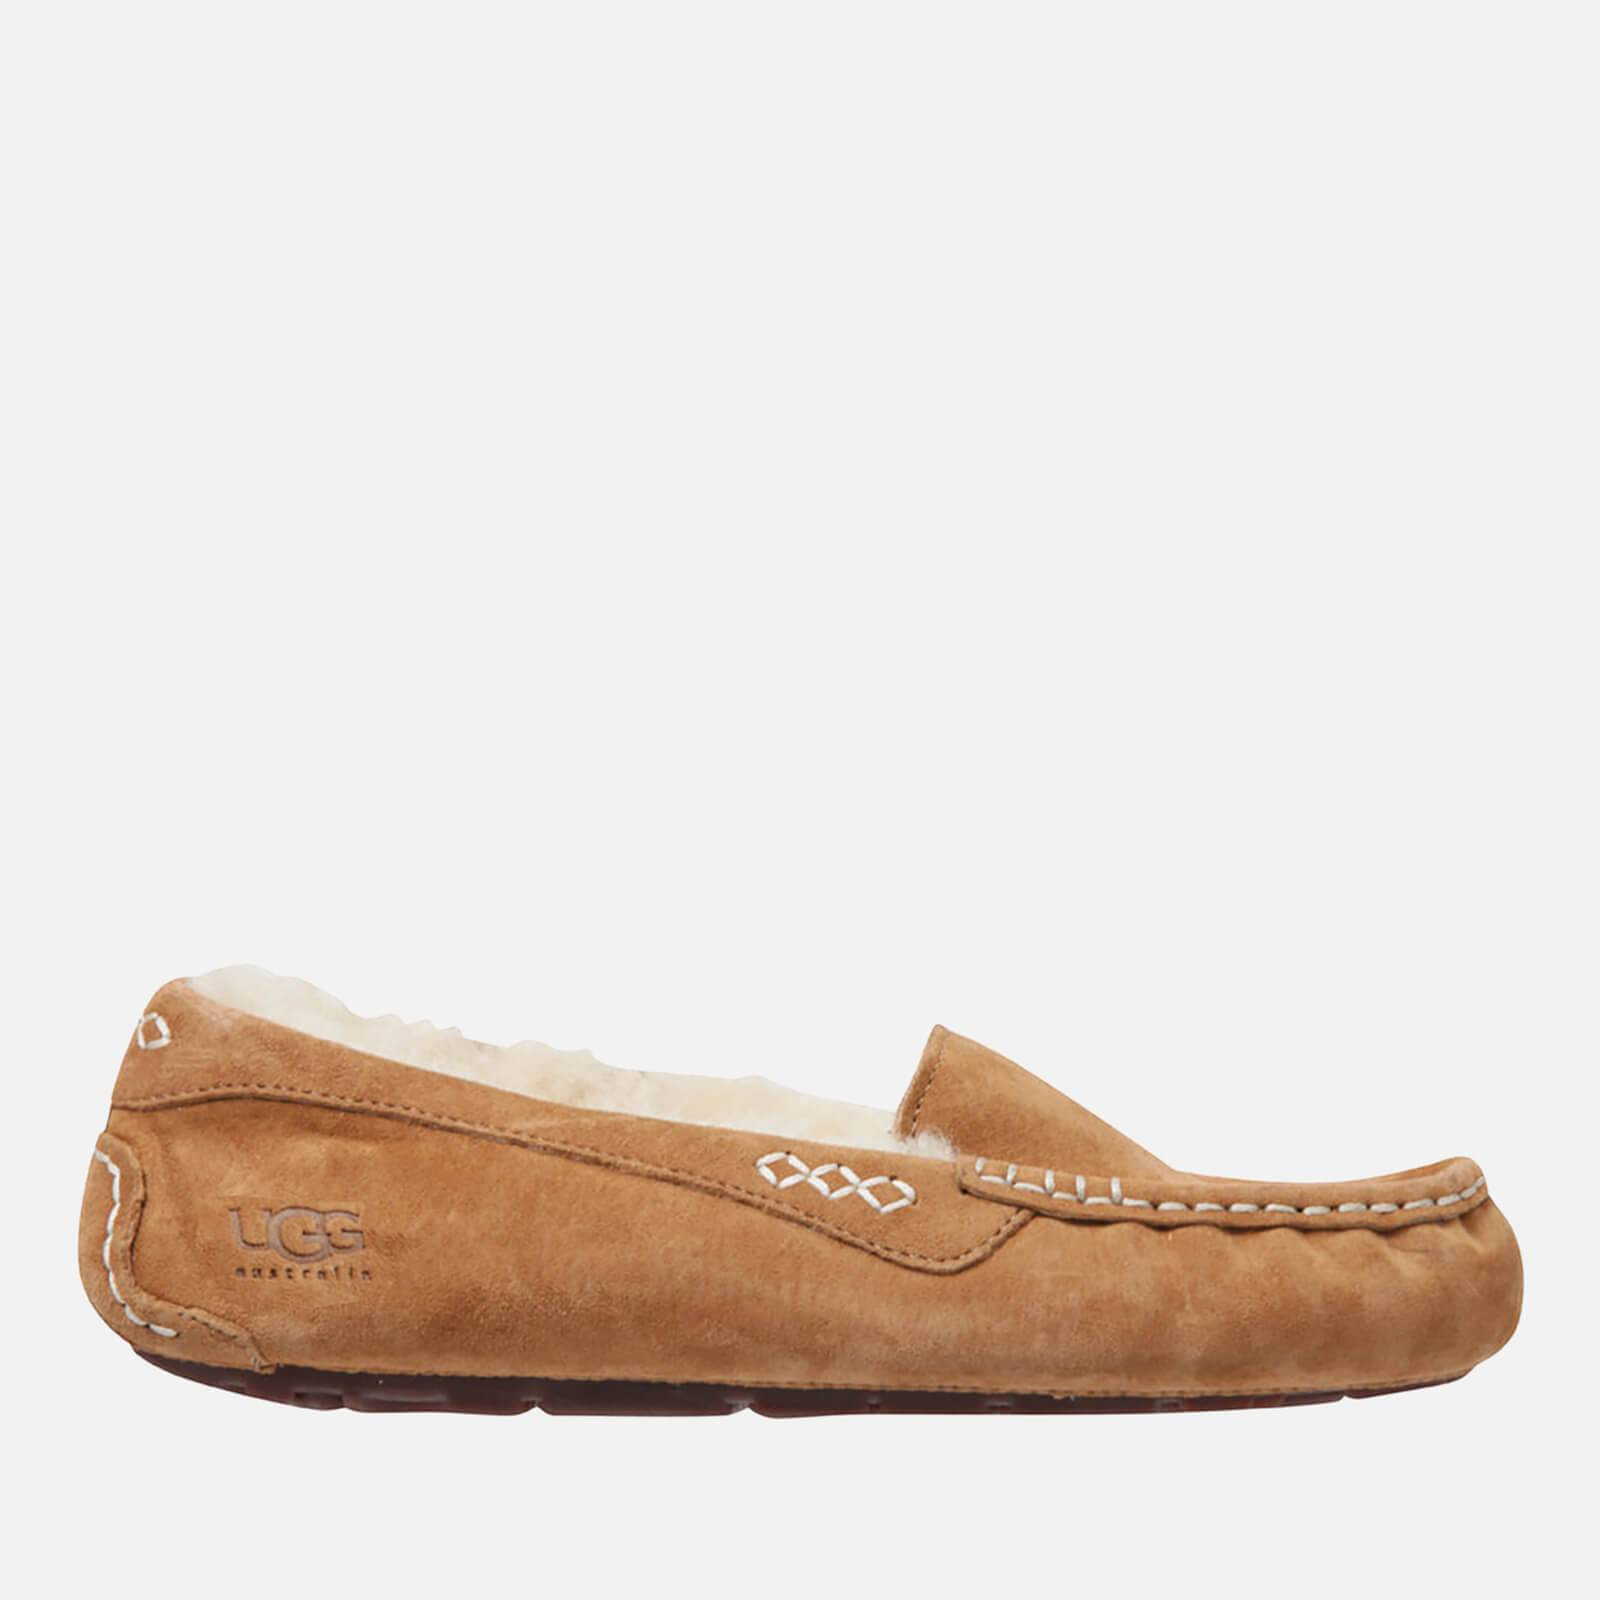 UGG Women's Ansley Moccasin Suede Slippers - Chestnut - UK 8